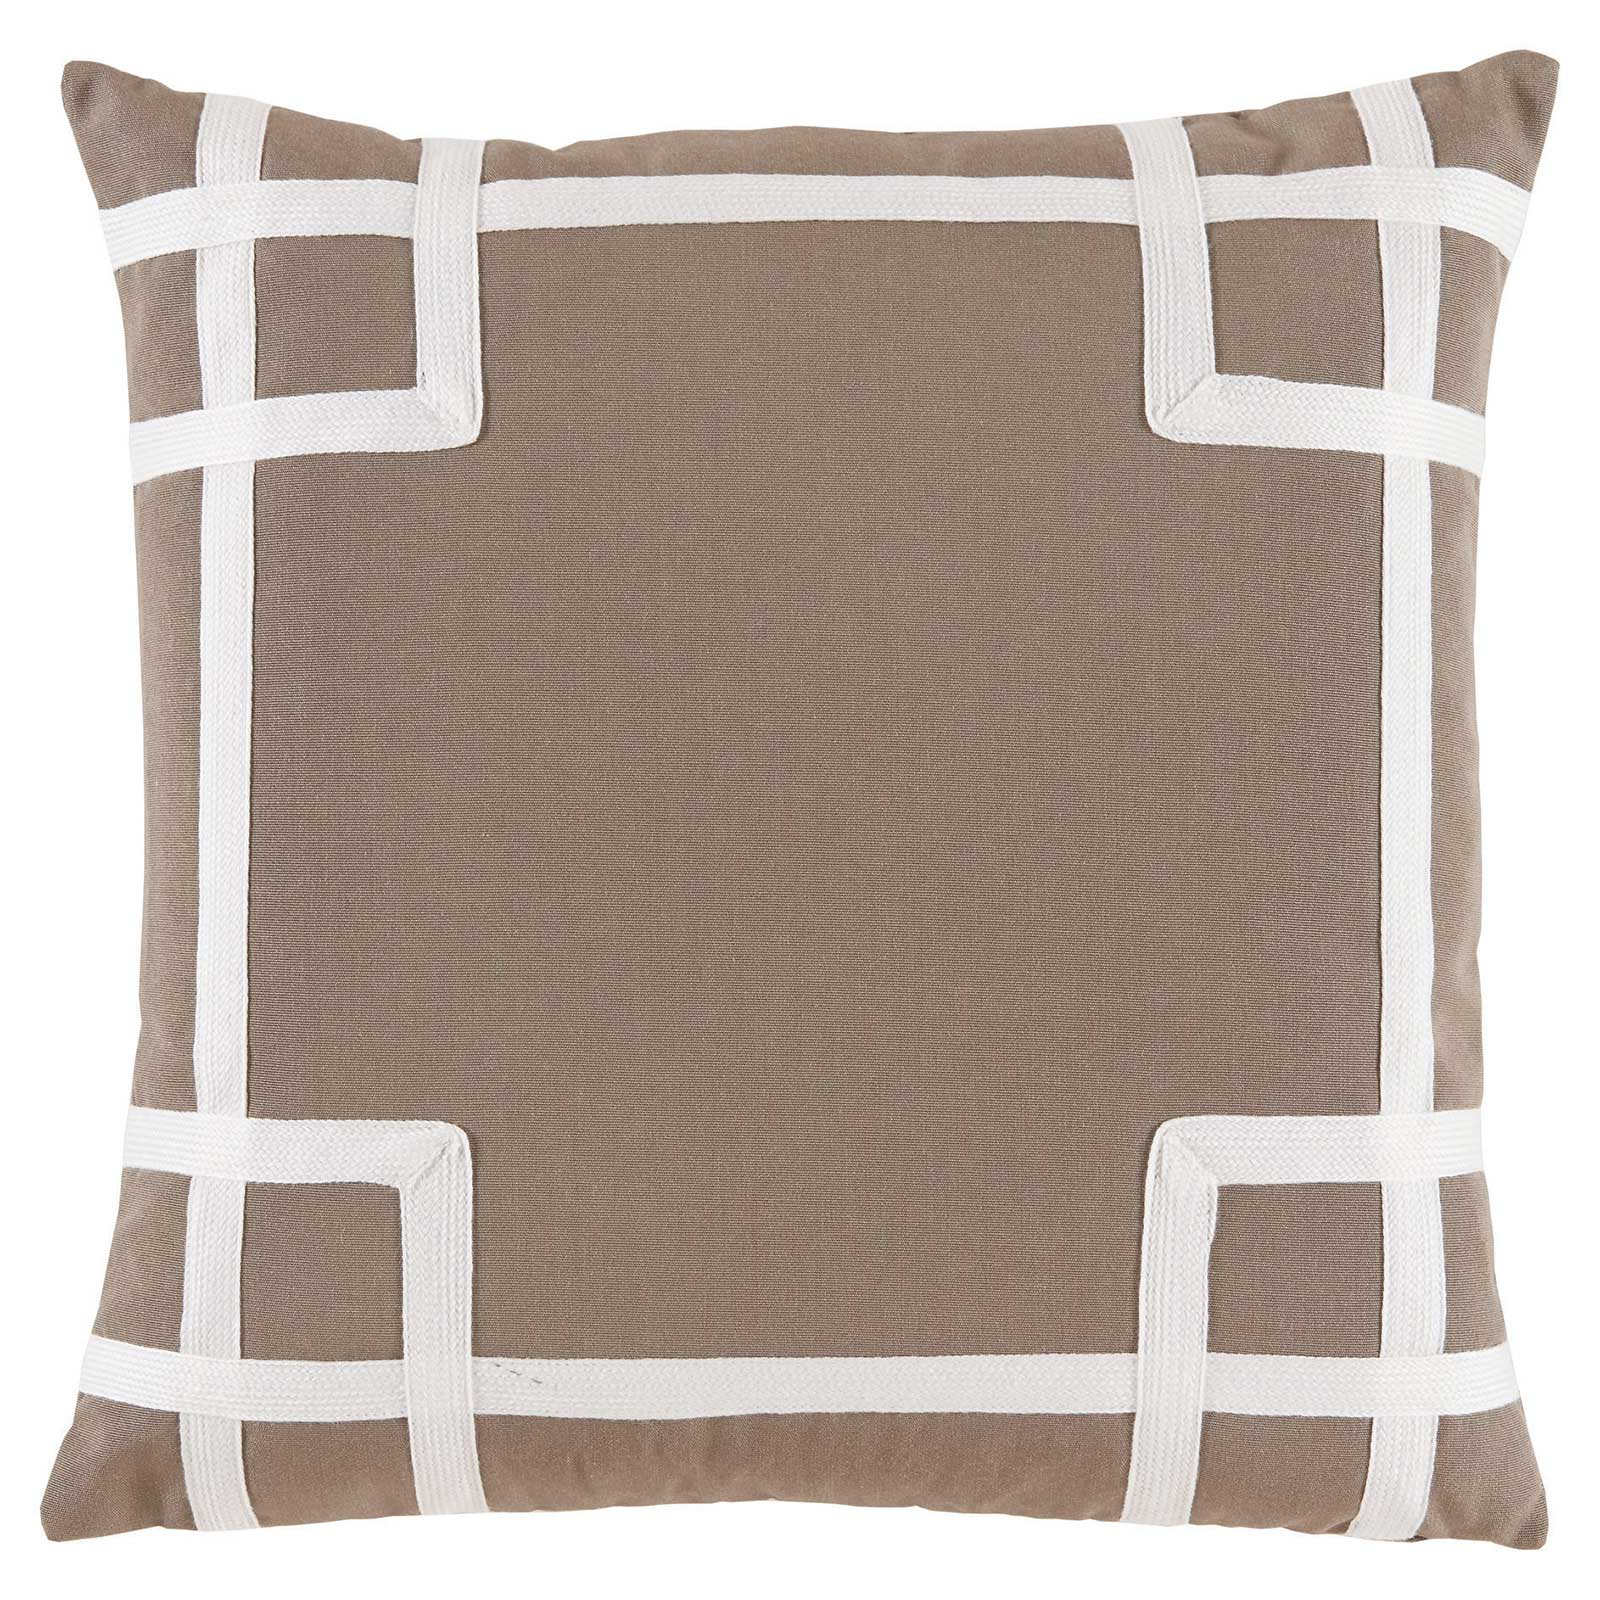 Paton Classic Outdoor Beige Trellis Trim Pillow - 20x20